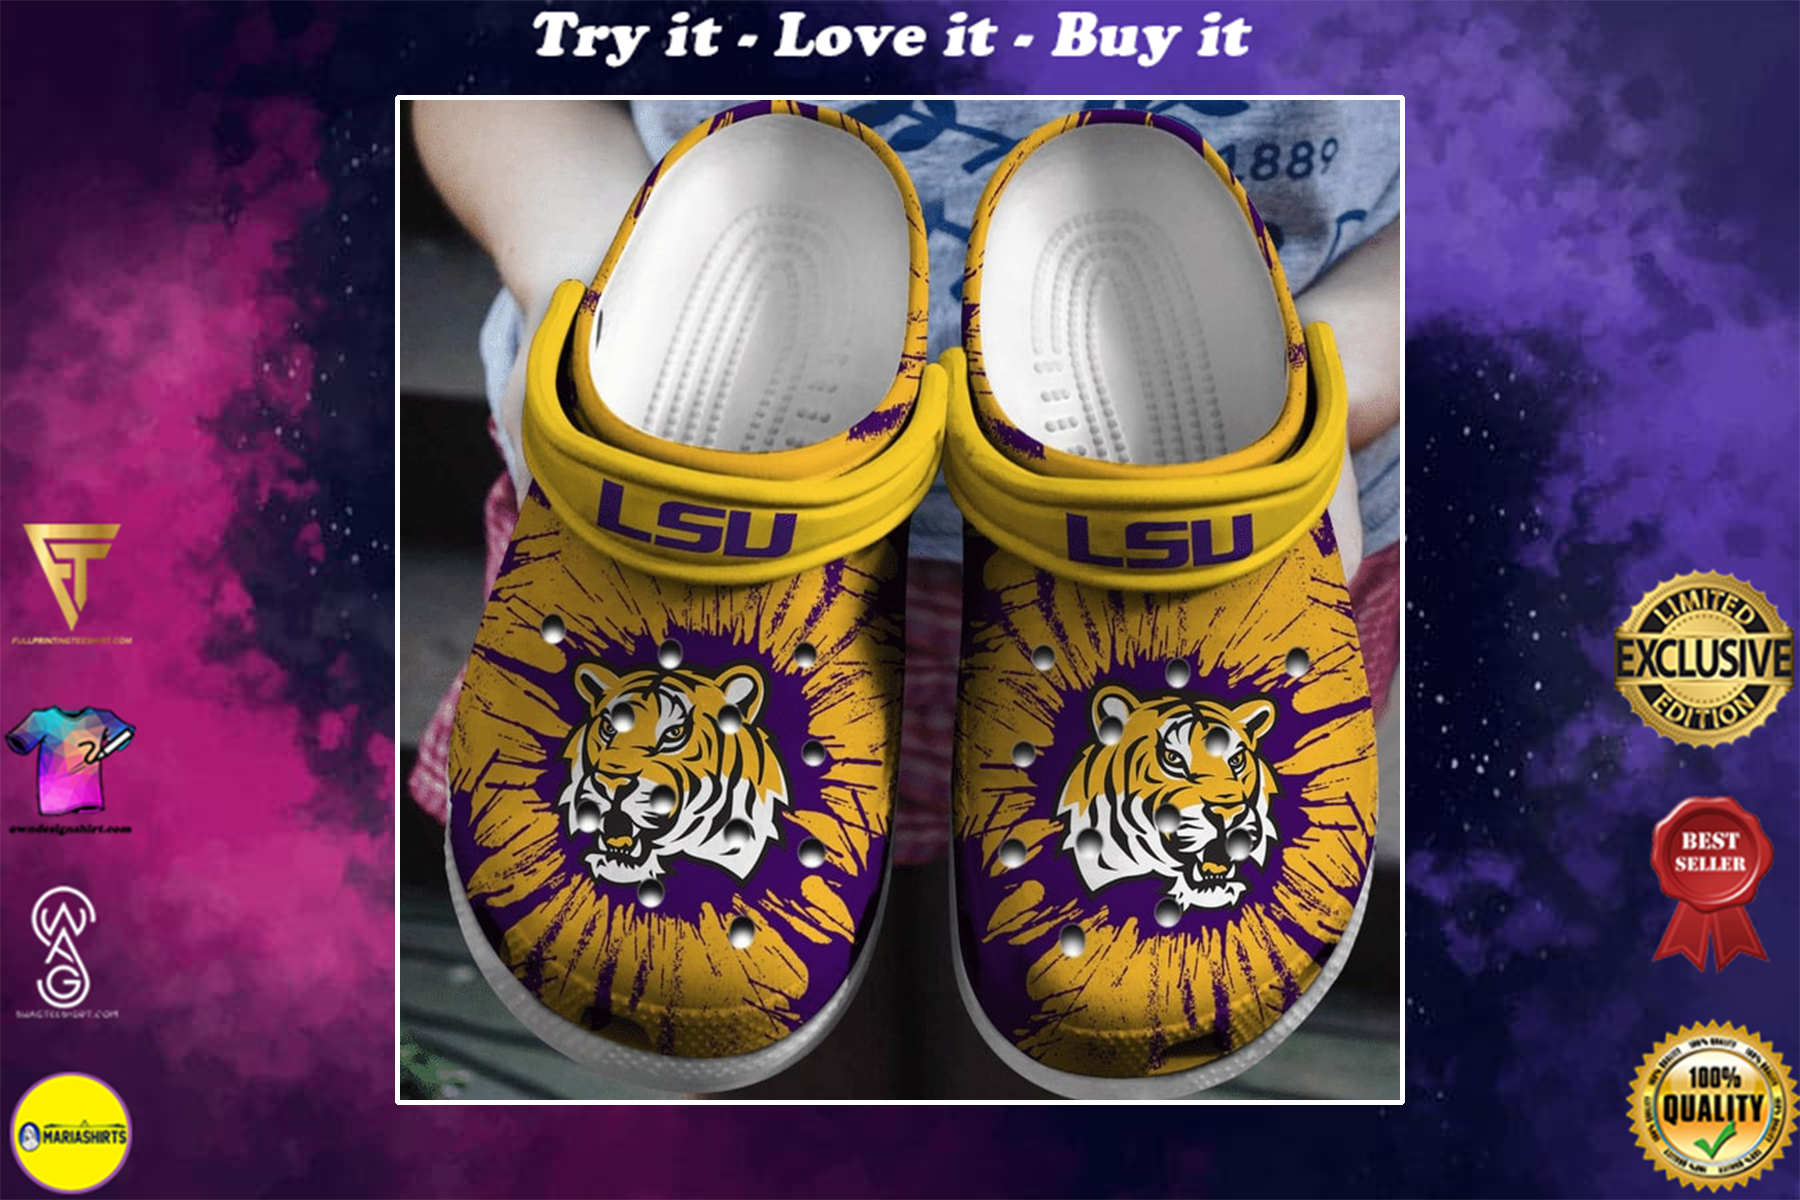 the lsu tigers football crocband clog - Copy